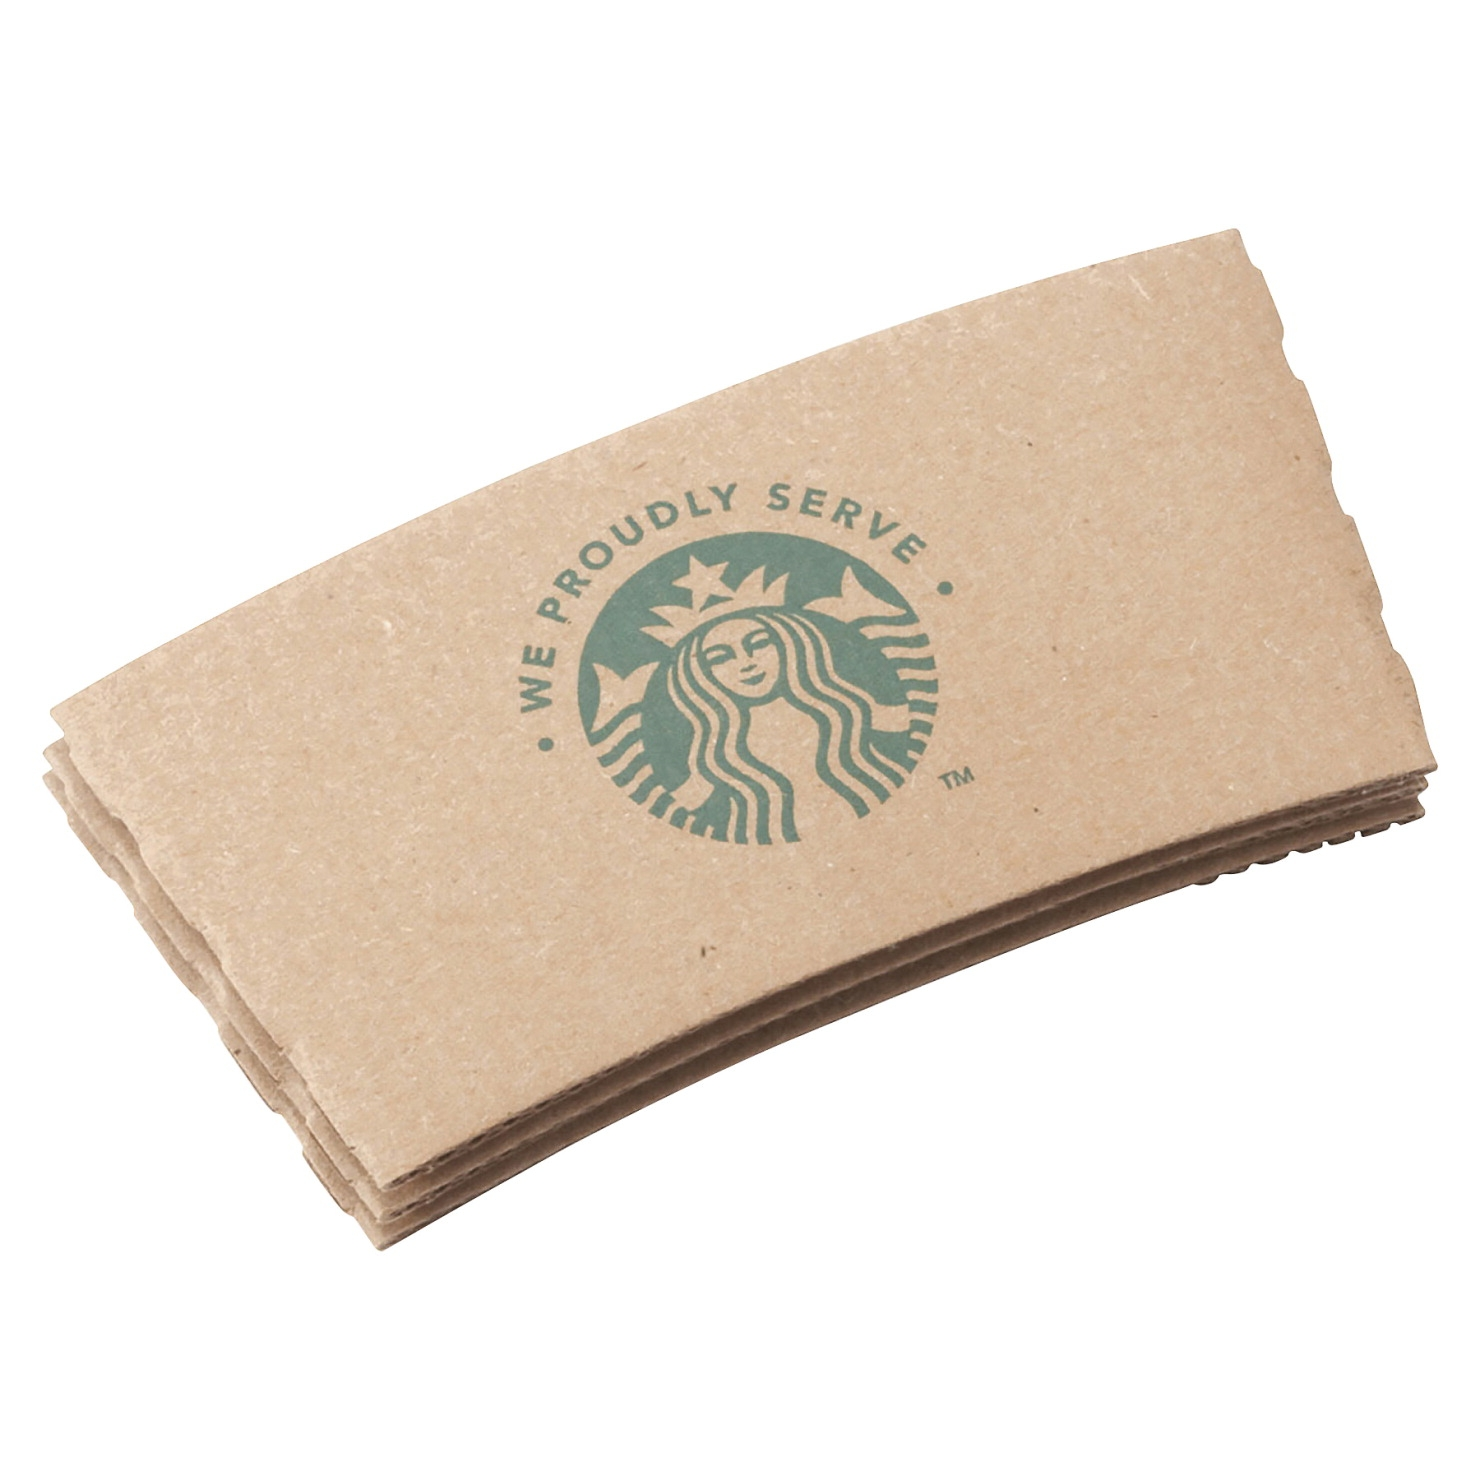 Starbucks We Proudly Serve Hot Cup Sleeve; 12-20 Oz; Fiber; Brown; Case Of 1360 - 1475110 - Baseball And Softball Baseball Athletic Supporter Cups 1475110